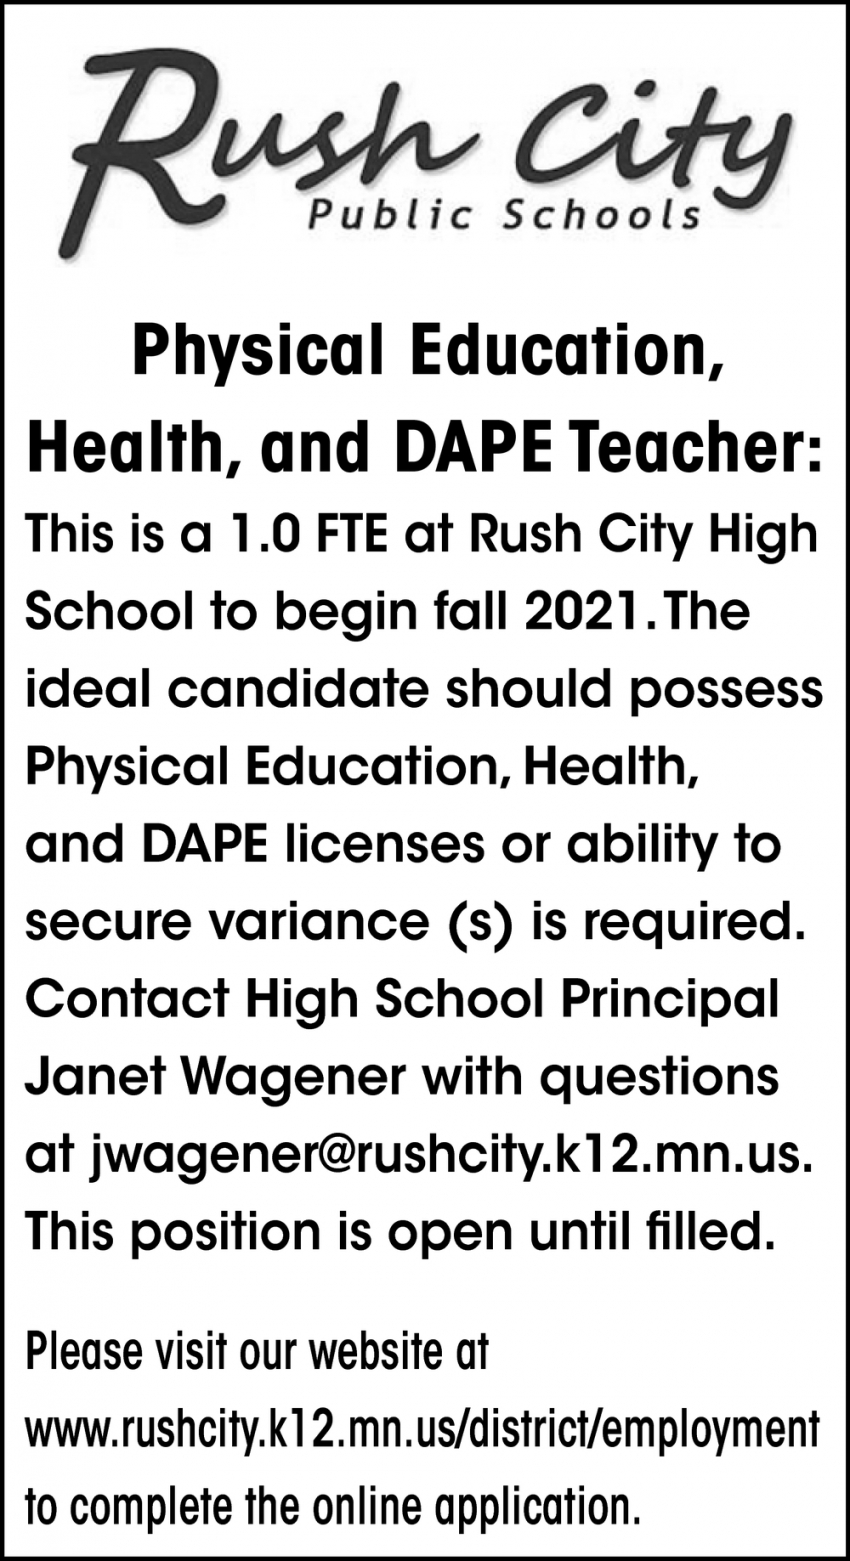 Physical Education Health, and DAPE Teacher